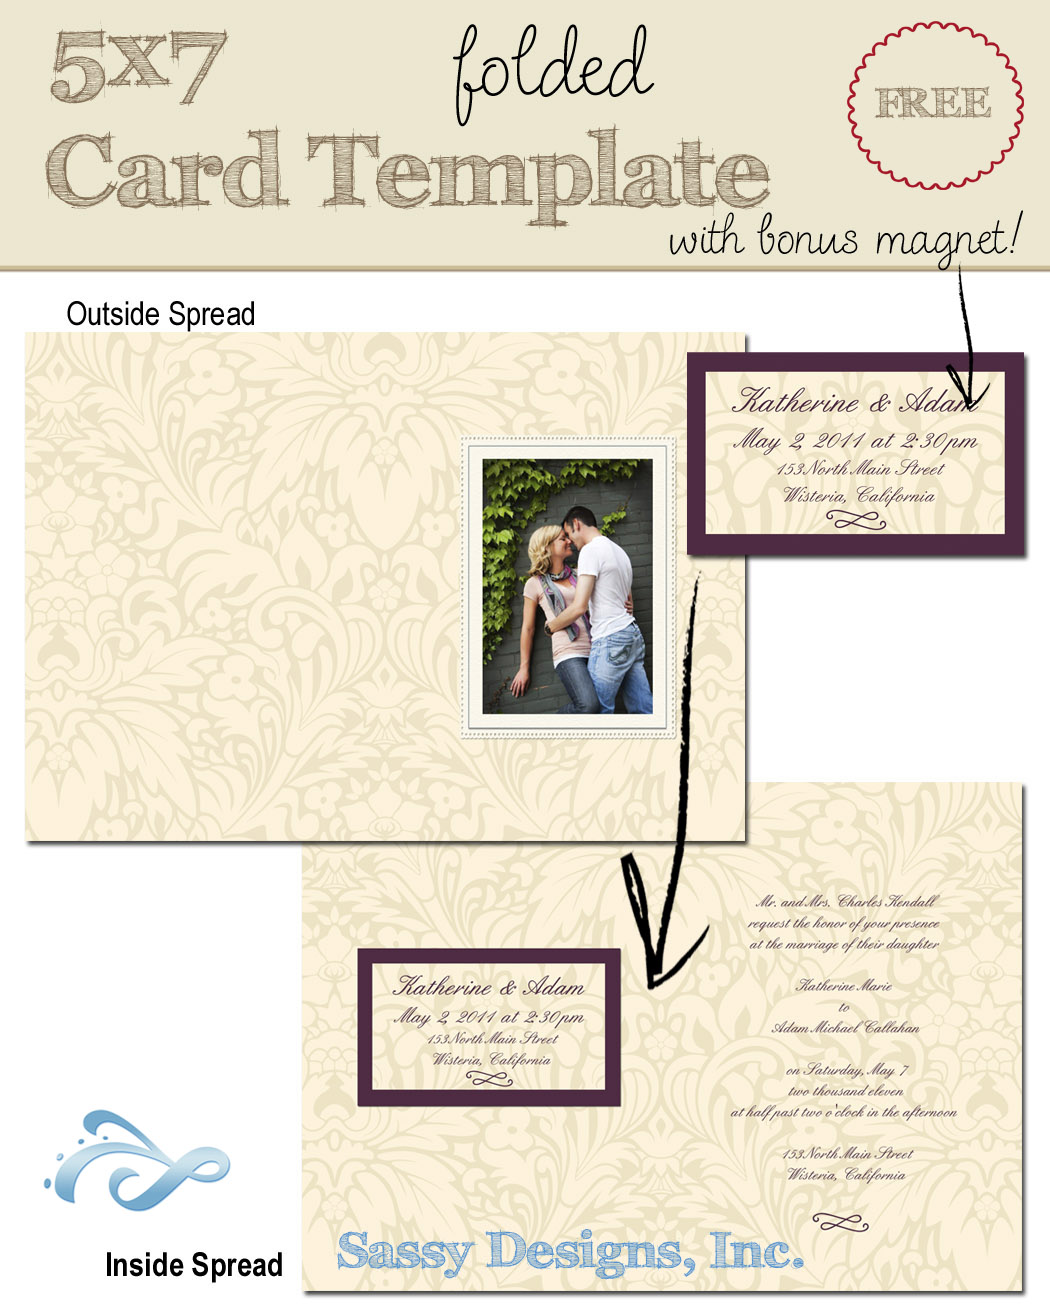 Invite 5x7 Folded Card Template w/Magnet